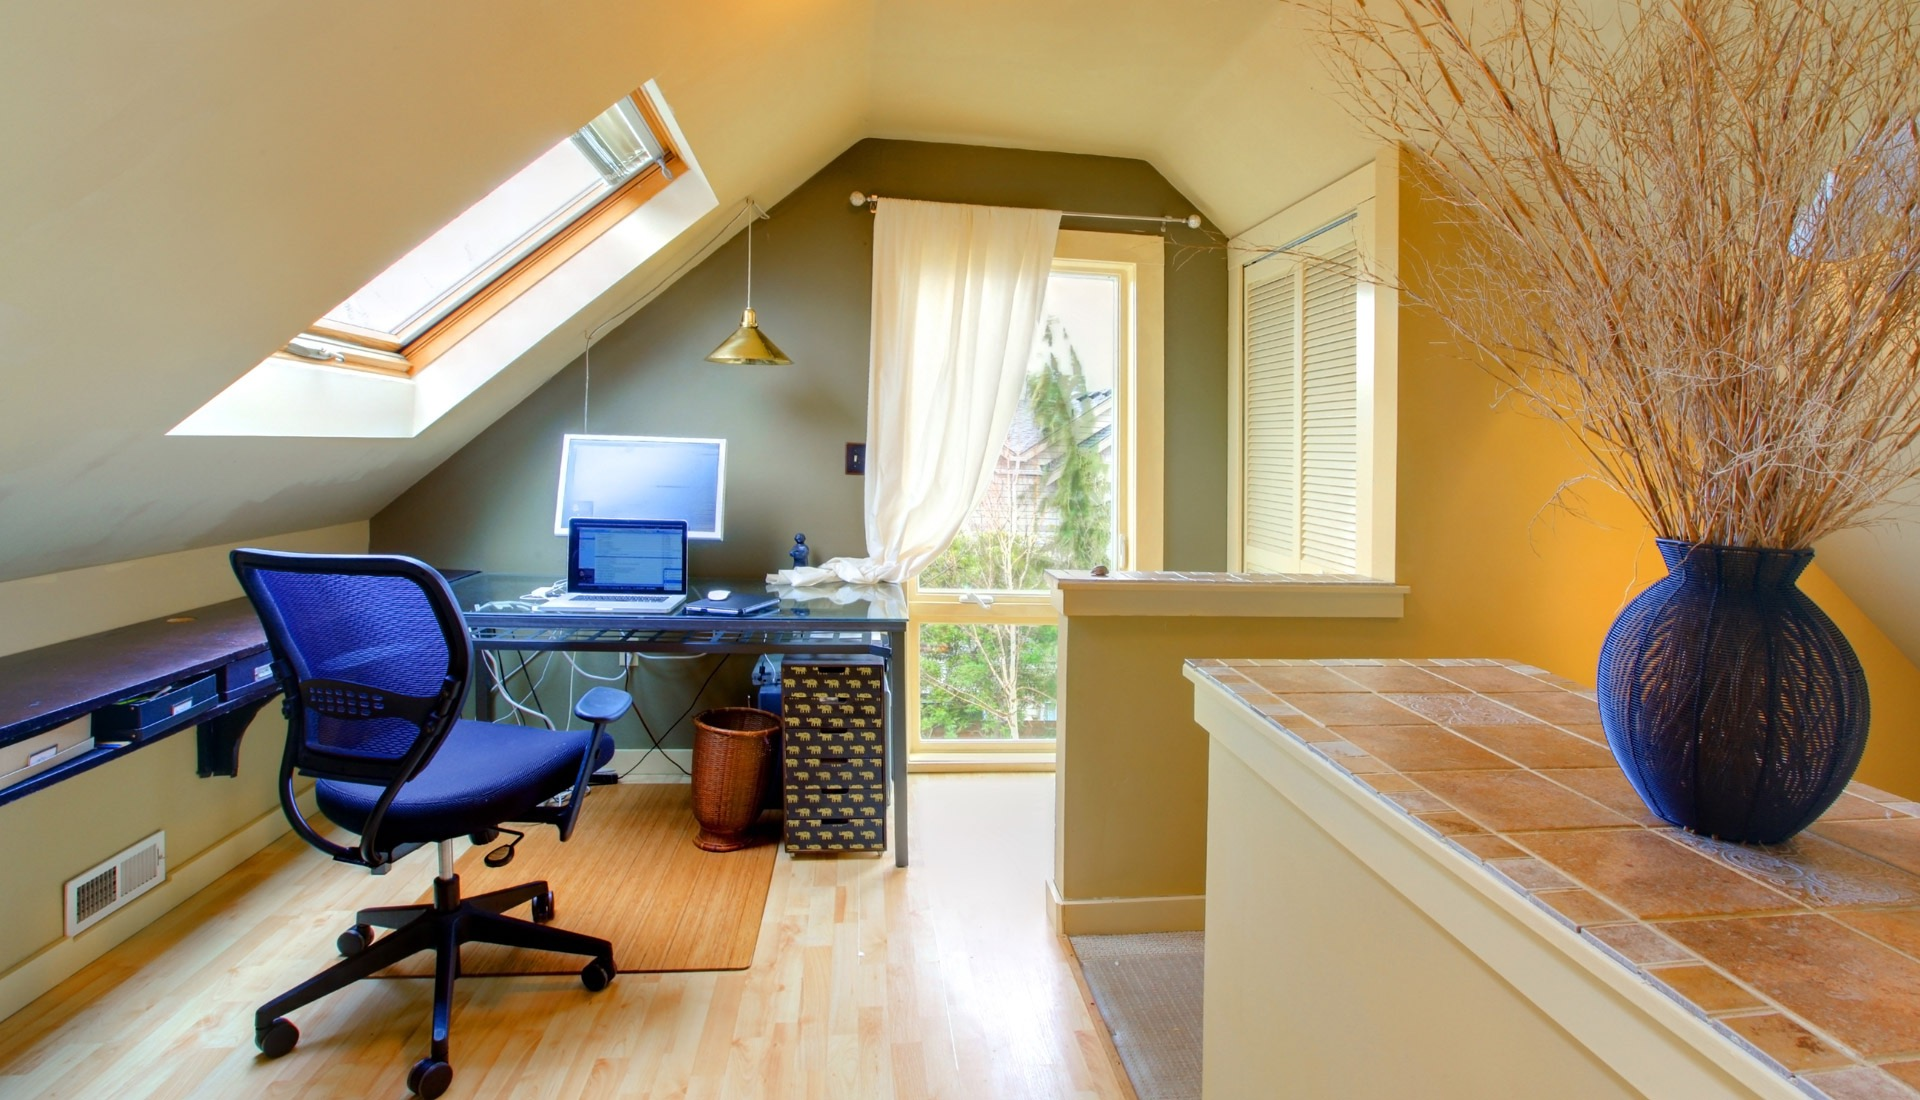 Attic Interior Remodel To Modern Workplace (View 5 of 26)